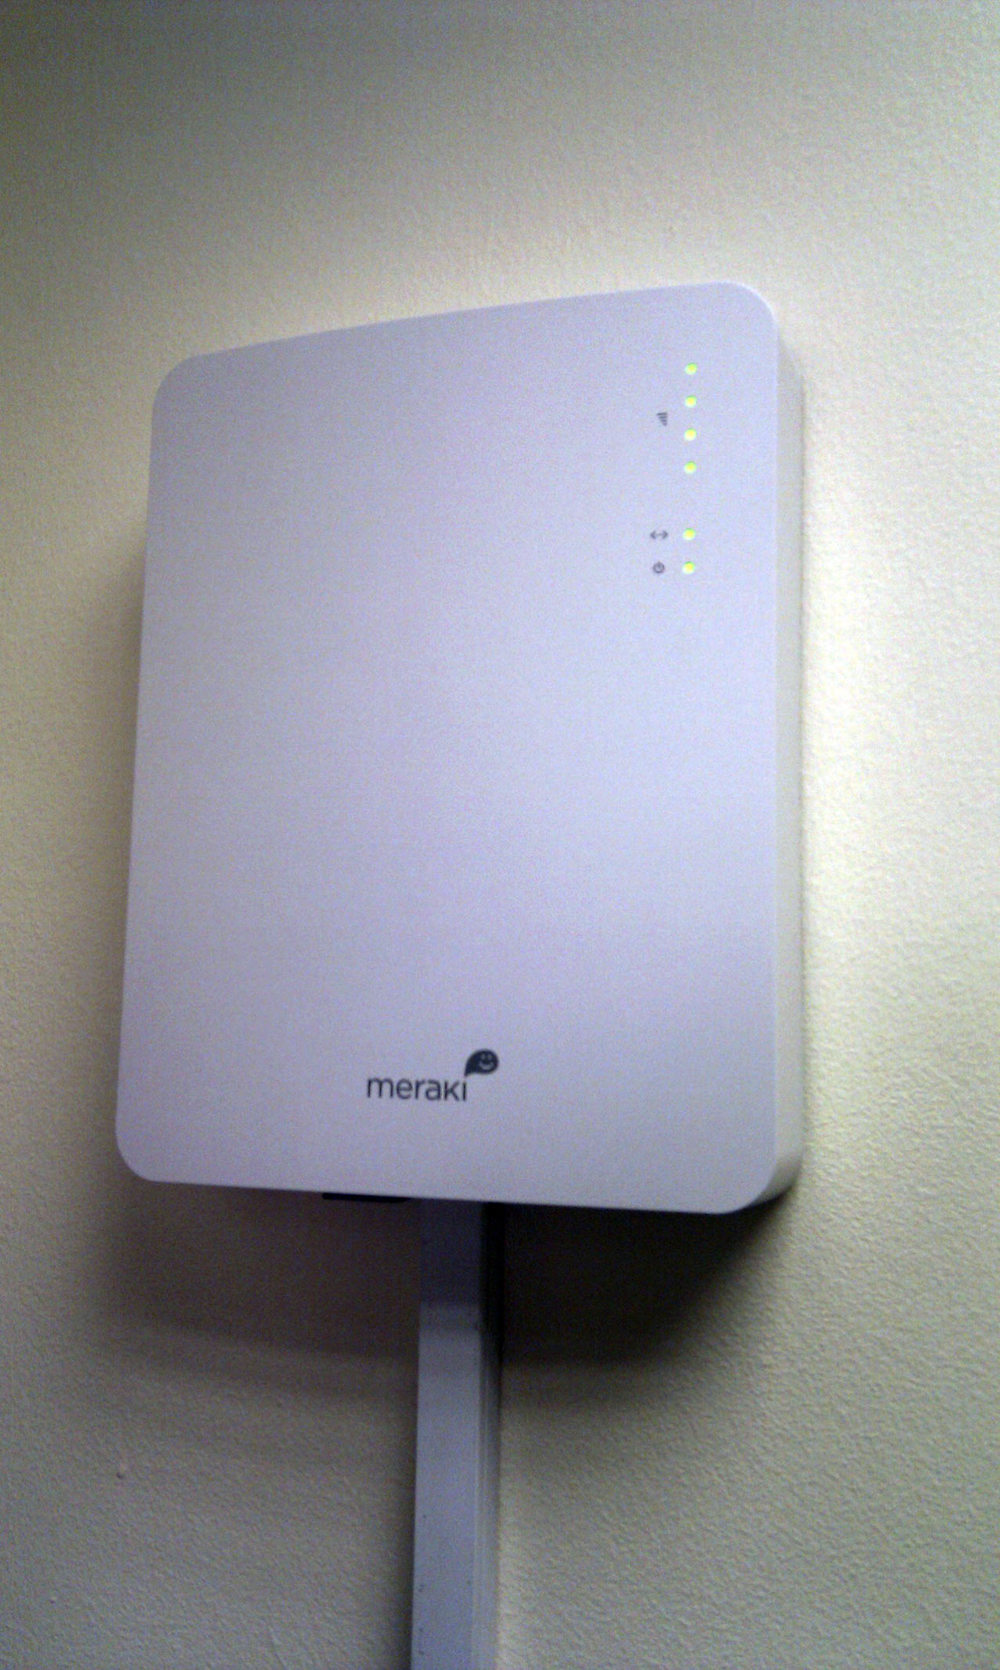 Meraki-MR11-Access-Point